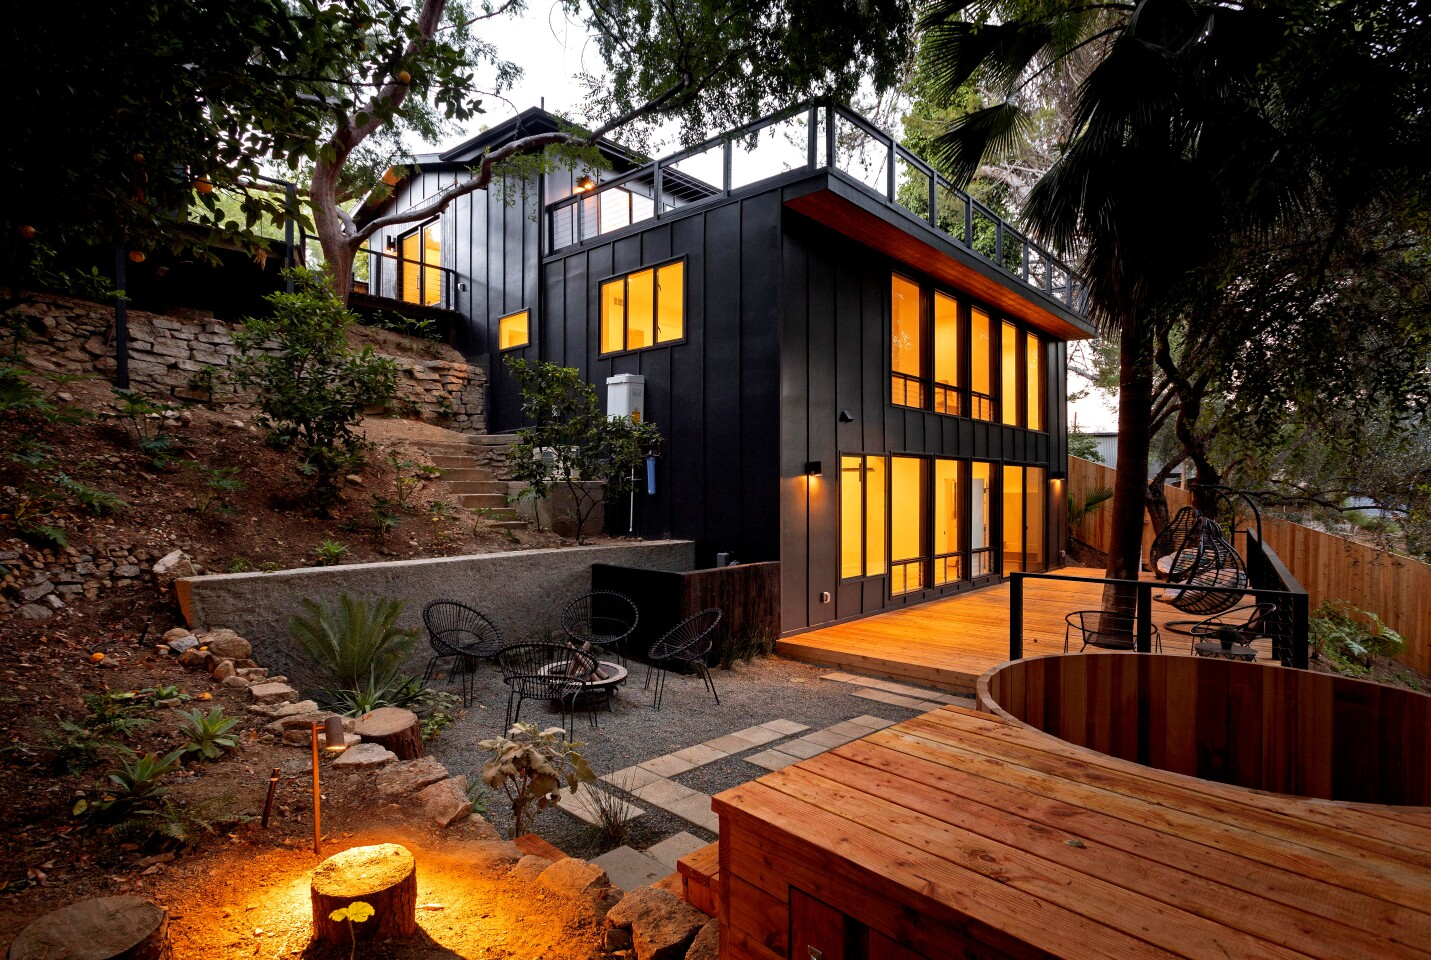 Listed for $2.149 million, the renovated home in Mount Washington presents as a modern treehouse with expansive decking that incorporates a number of mature trees into its design. Renovated by L.A.-based firm KeltnerCo, the three-bedroom, four-bathroom house has a casual feel with open-concept living areas, light hardwood floors and a mostly white-walled interior. The new-look kitchen is anchored by an island/breakfast bar topped with dark-hued Calacatta marble. The living room, which has a three-sided fireplace, sits nearby. Decking on multiple levels creates more than 700 square feet of additional space. A detached studio and a cedar spa lie elsewhere on the grounds.